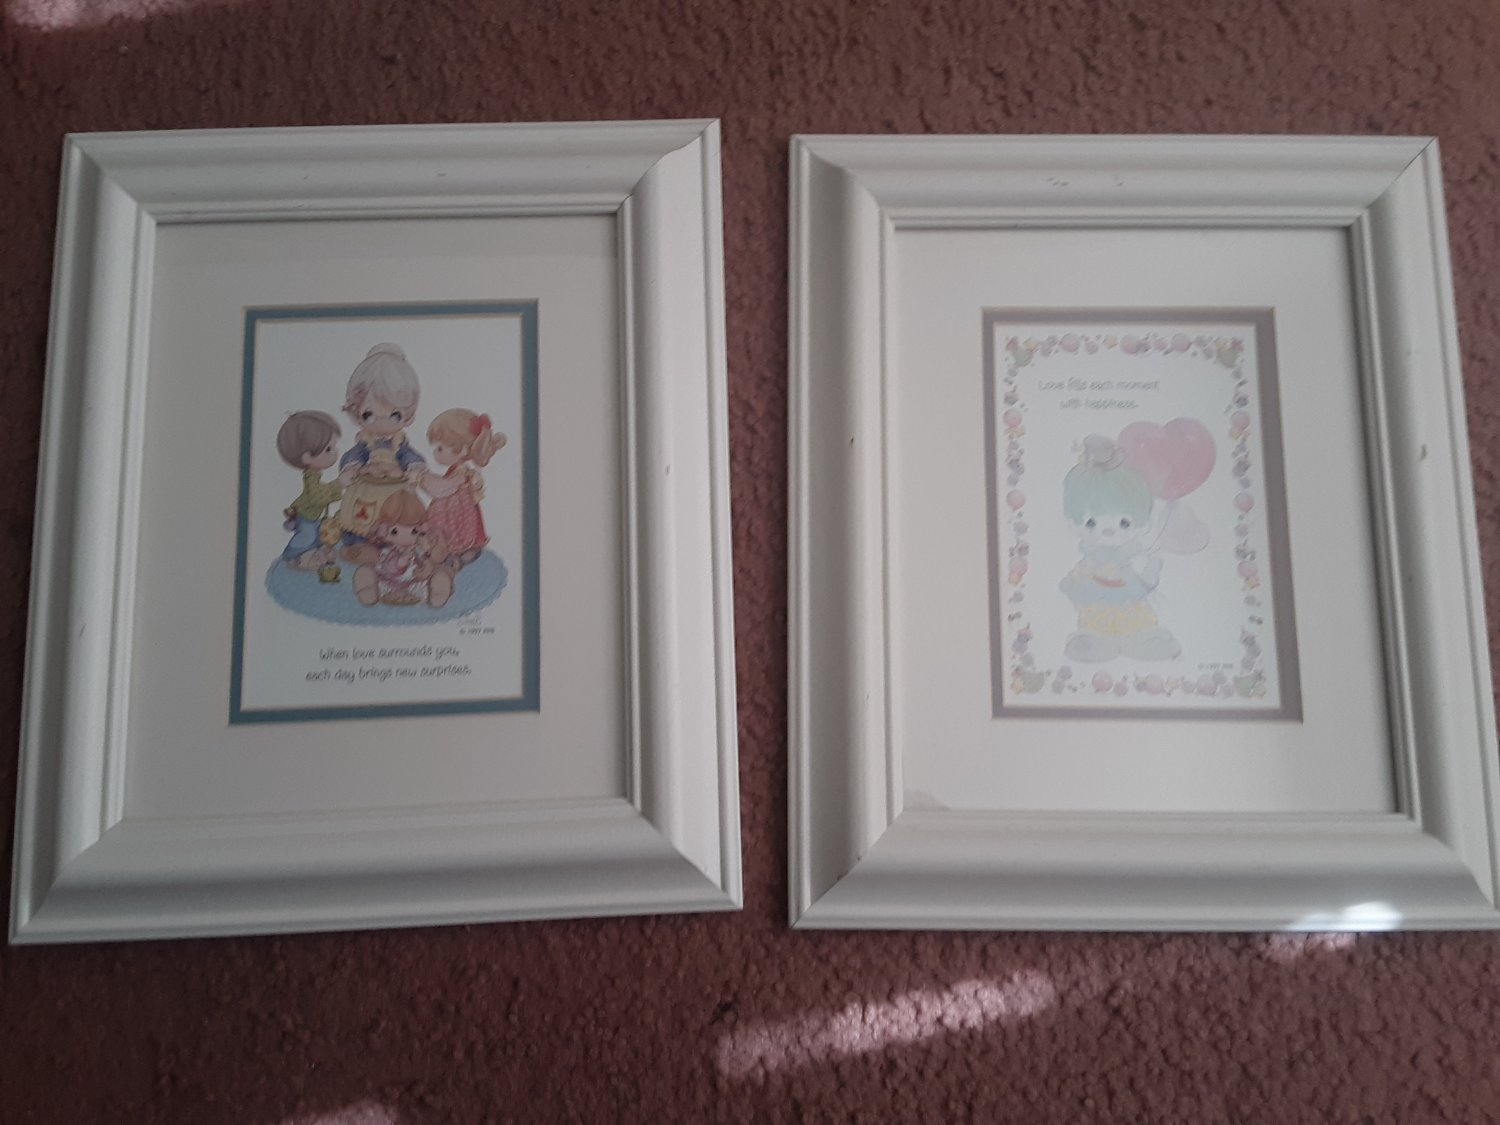 Vintage 1997 - Set of 2 - Precious Moments - Frame & Matted Wood Framed Pictures     (1717)